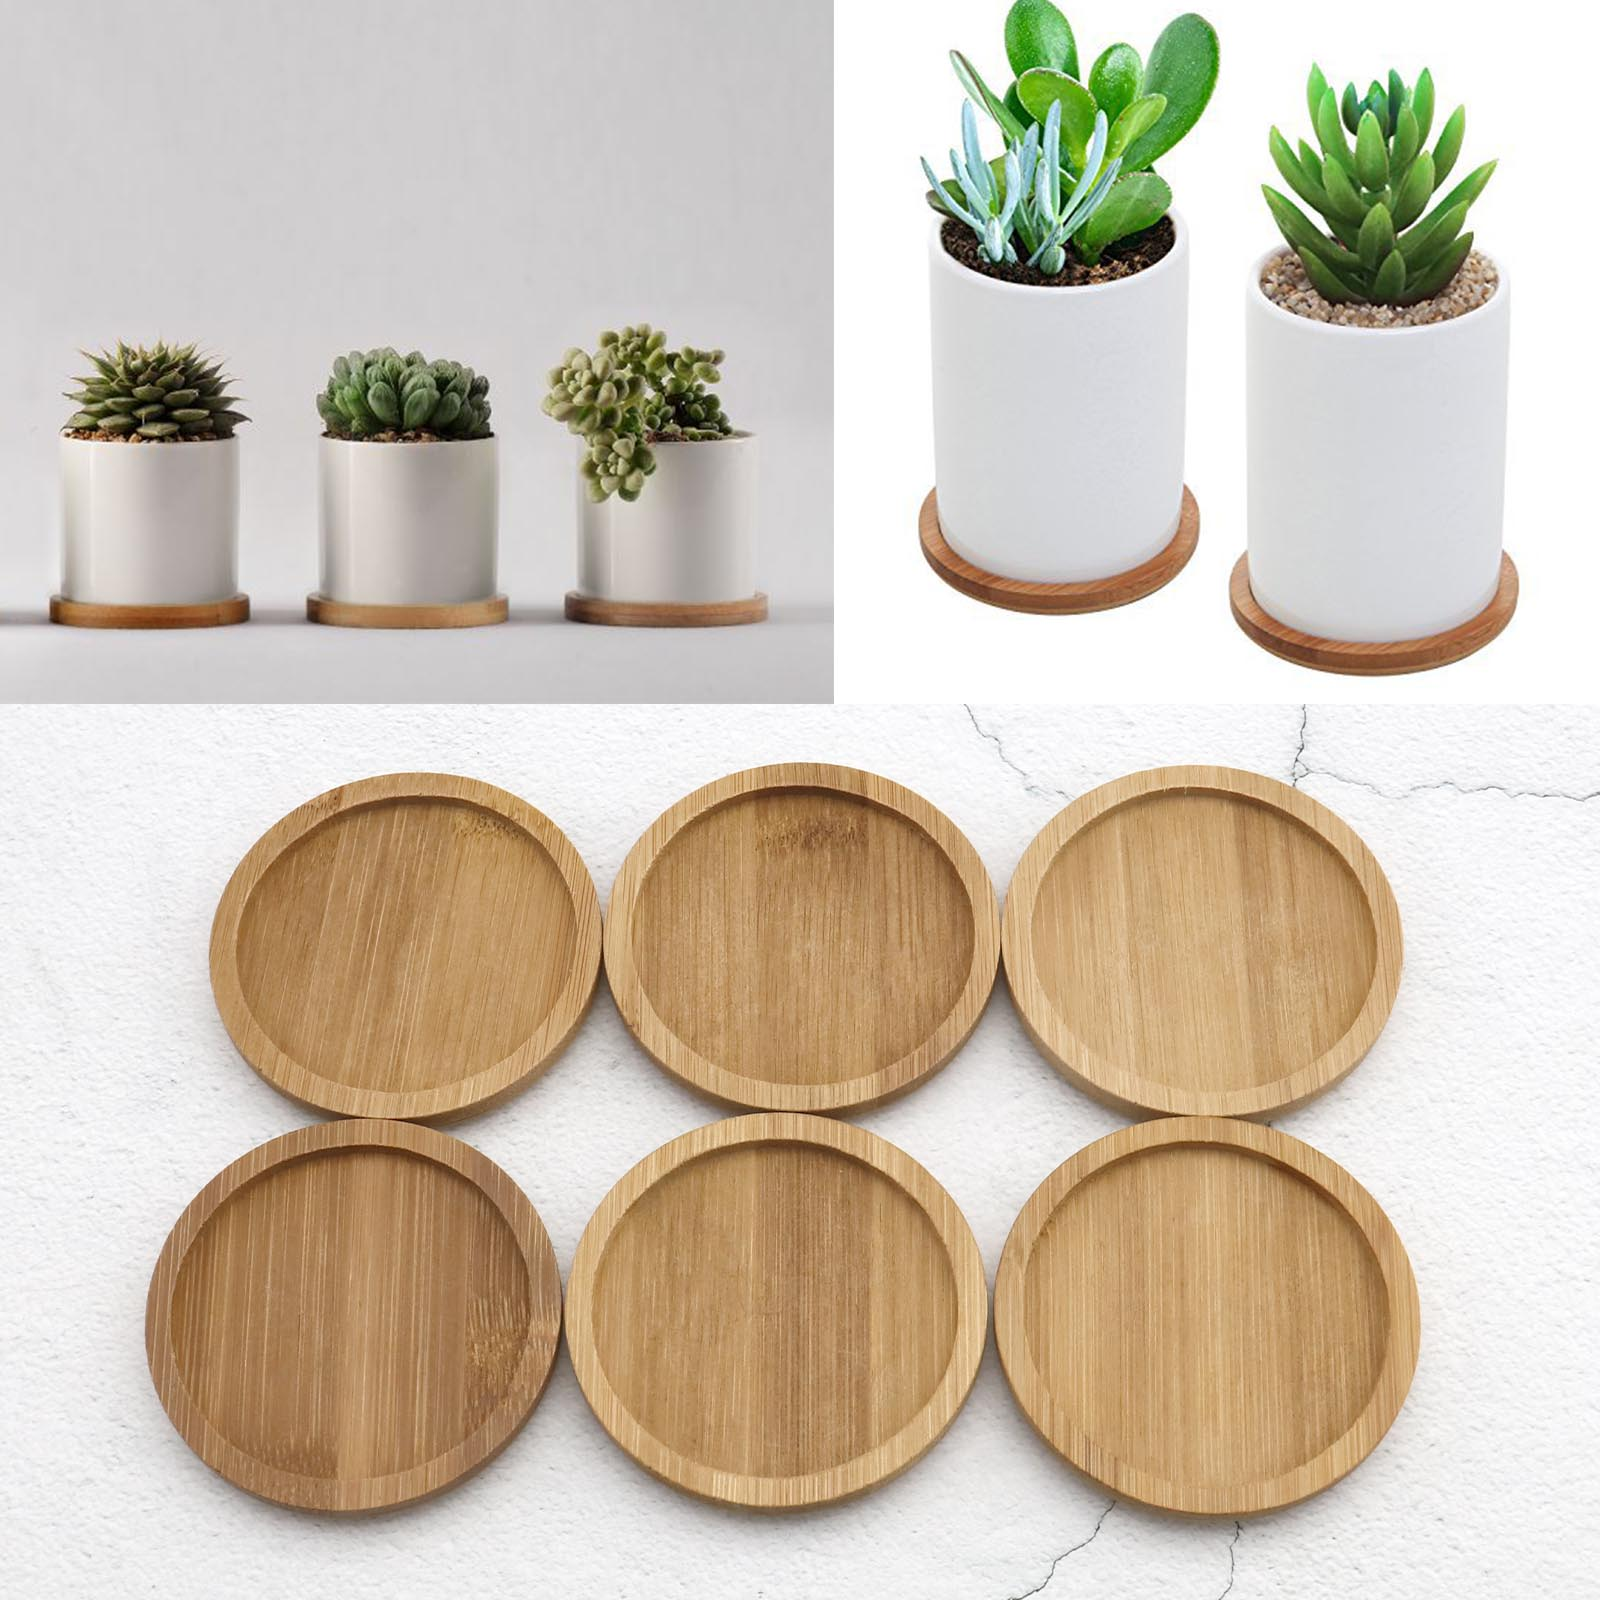 Trays 3 Inch Bamboo Round Plant Saucer Succulent Saucer For Plant Pot Flower Pot